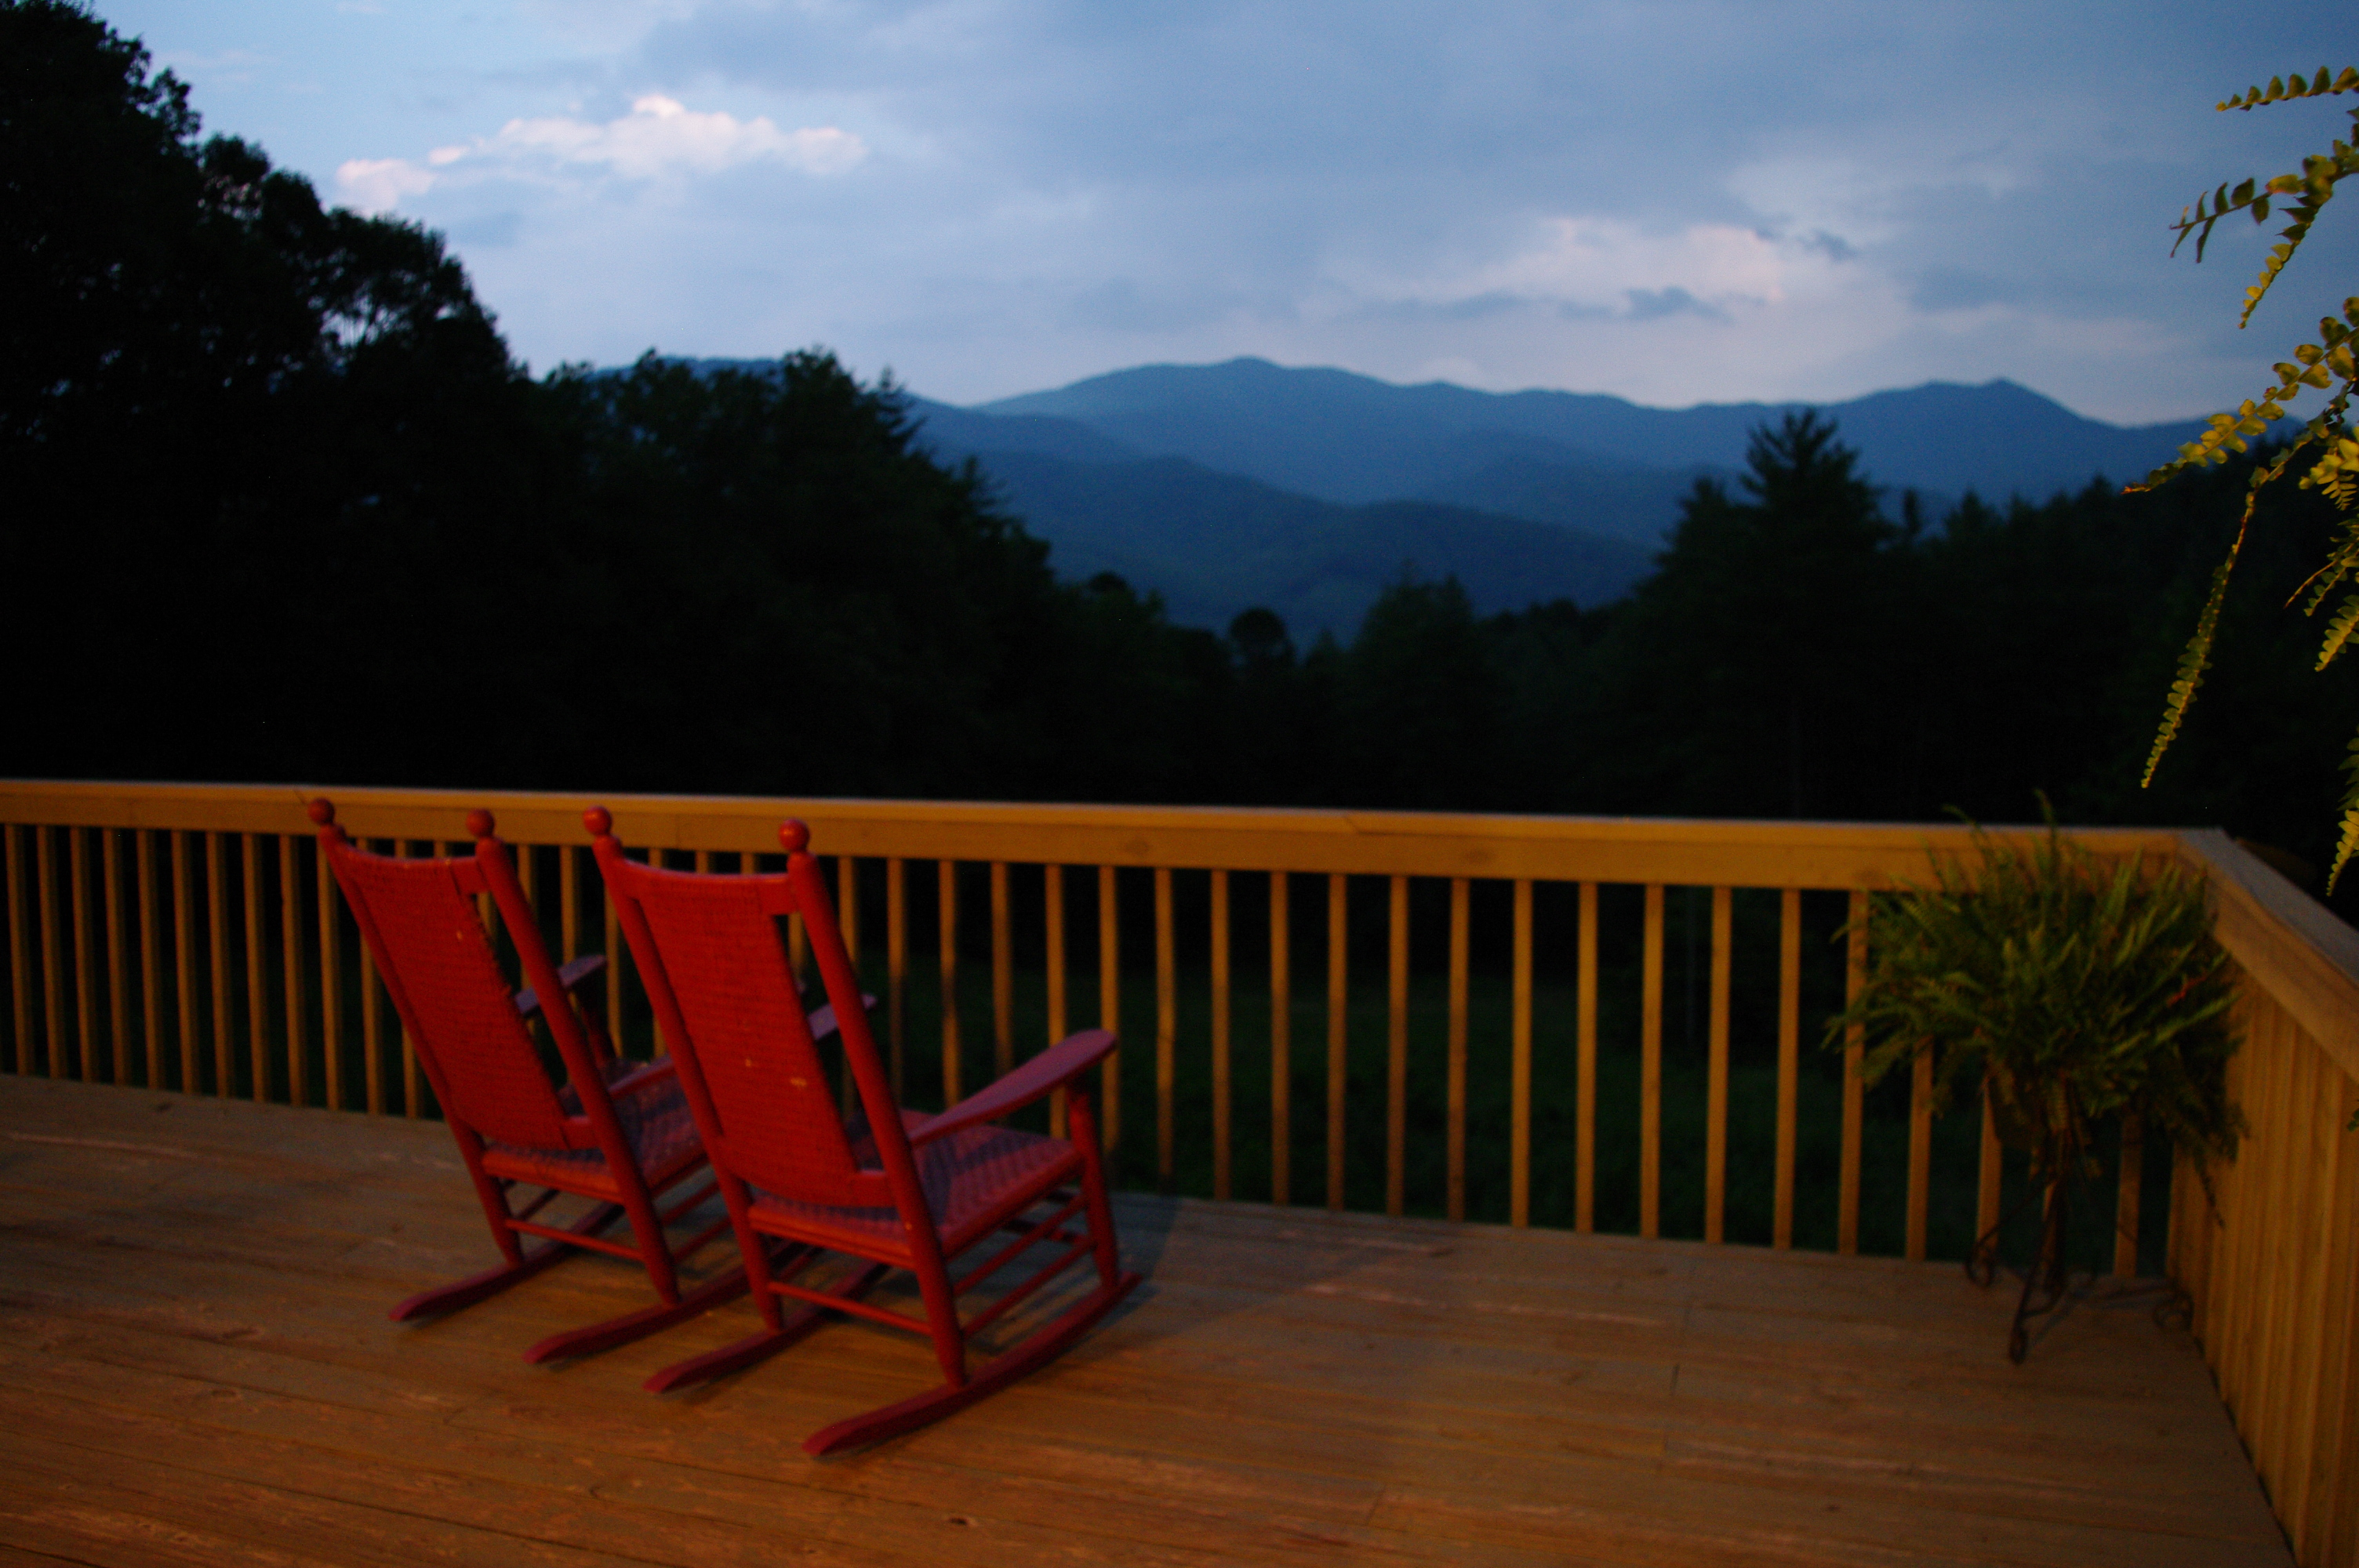 Relax in a rocking chair while overlooking the mountains